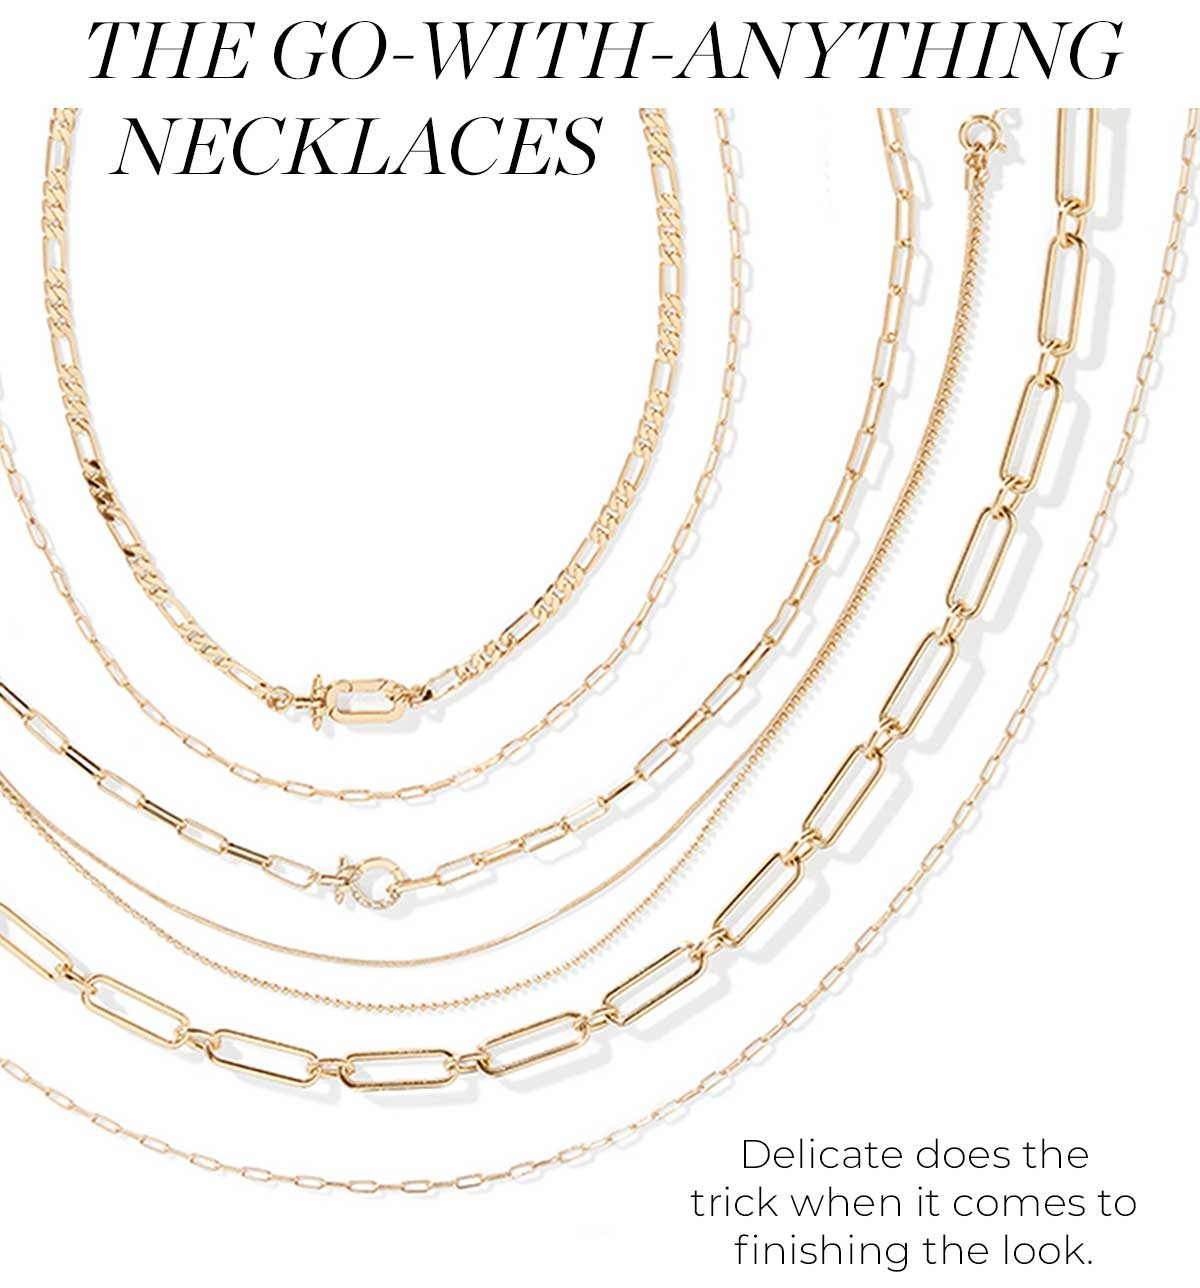 The Go-With-Anything-Necklaces